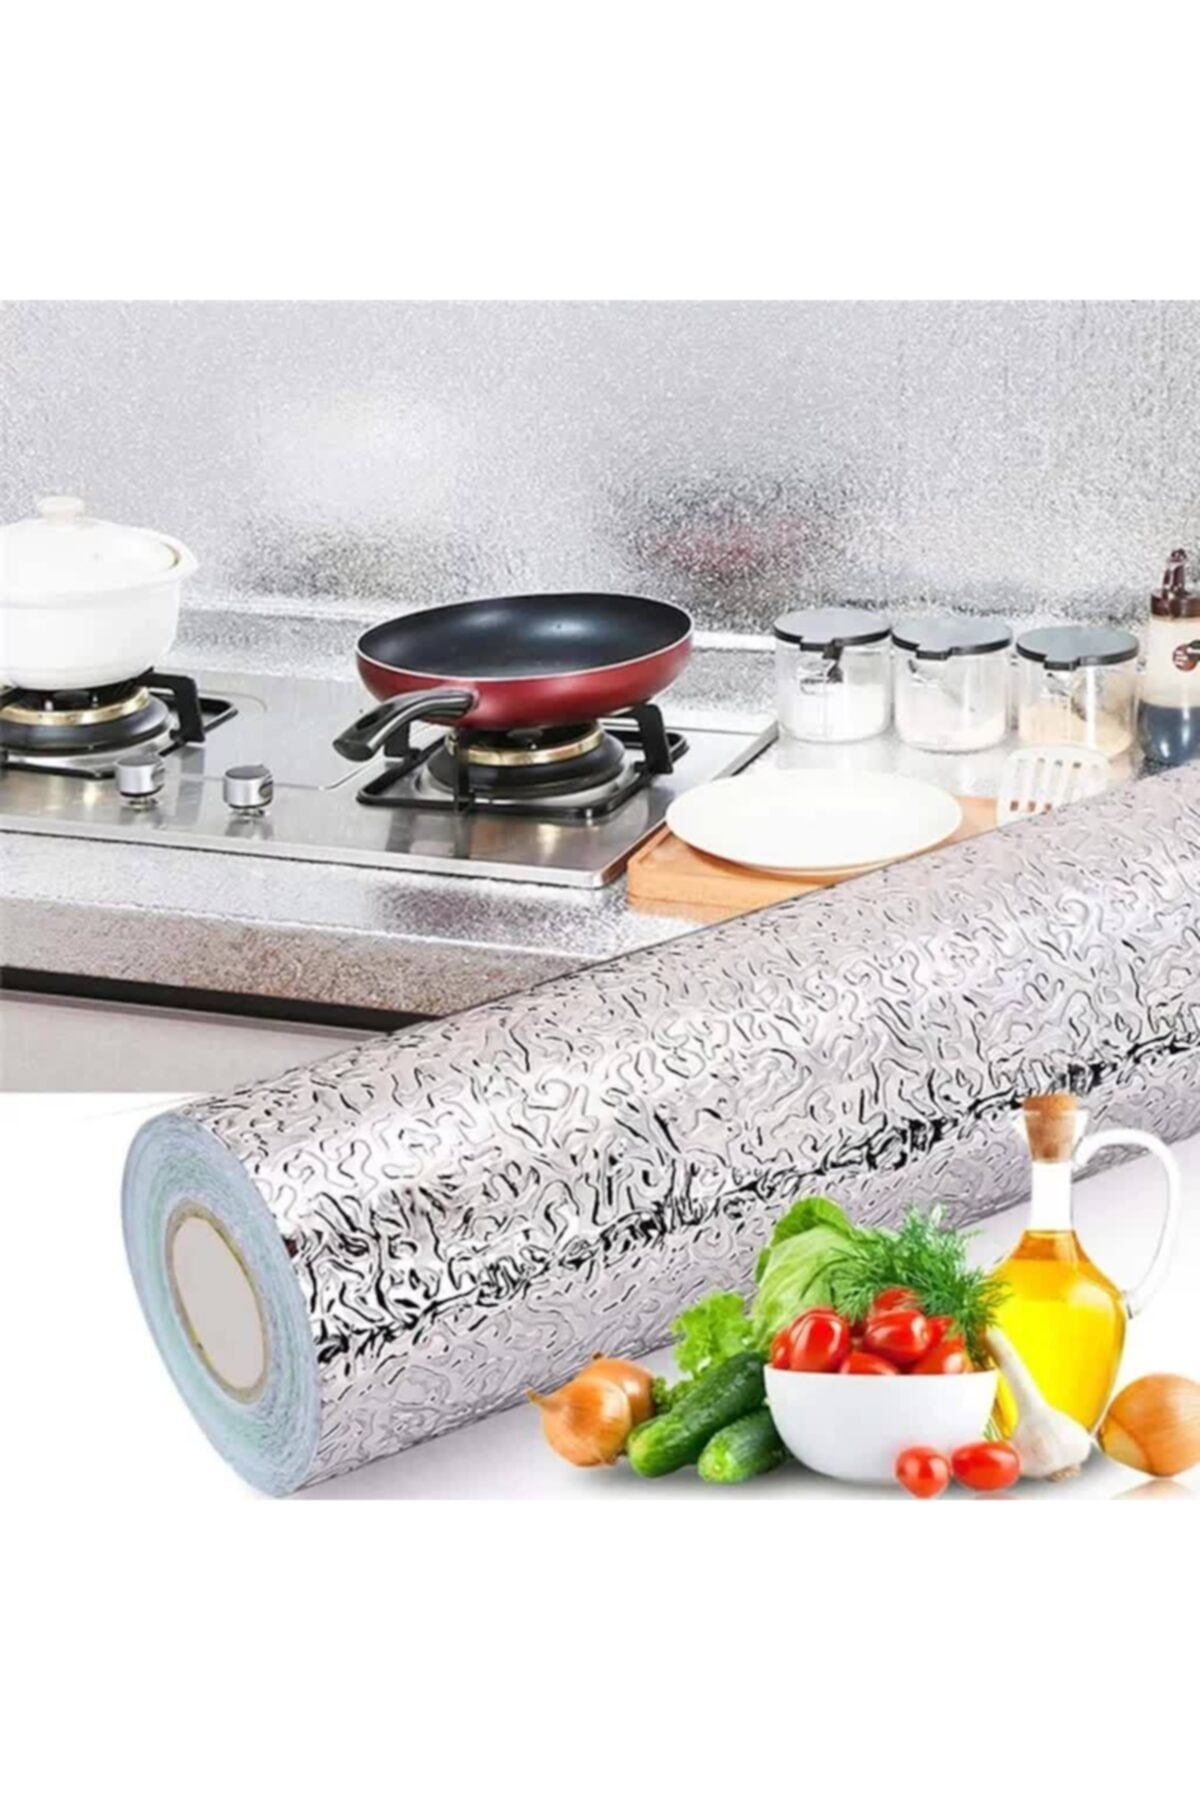 Self Adhesive Foil Aluminum Foil Self Adhesive Drawer Wall Cladding Silver Color 300 X 40cm